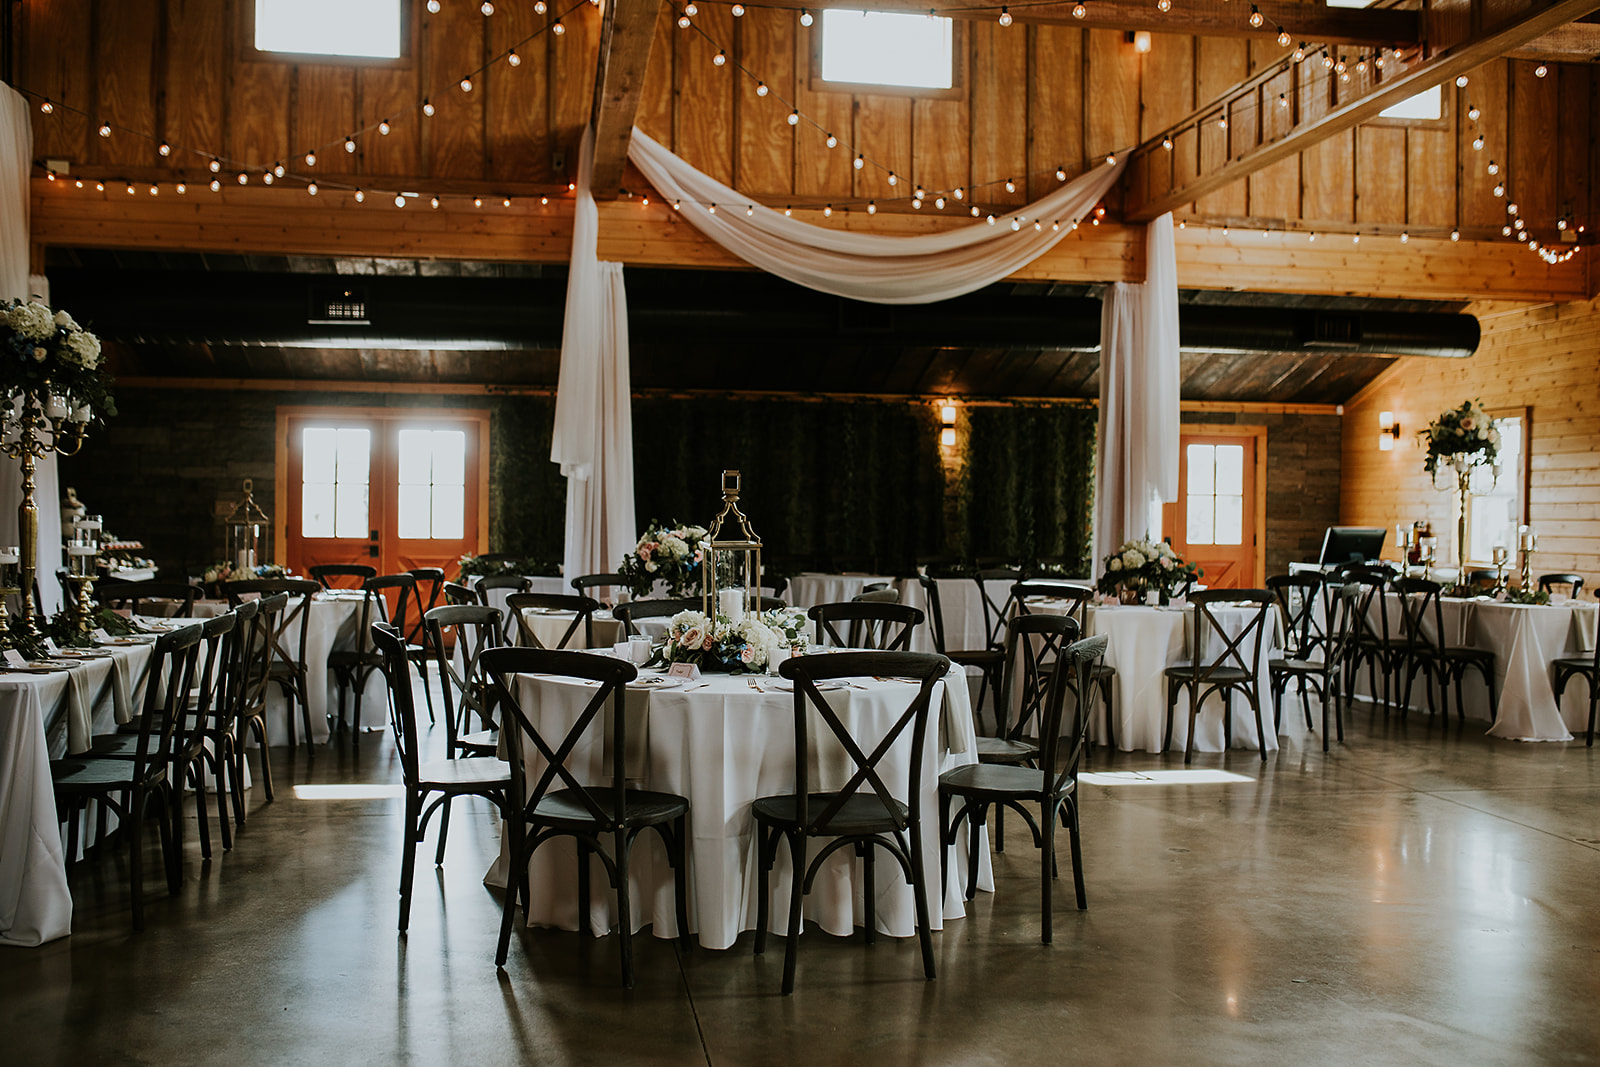 It's important for venues to maintain a high level of cleanliness for both the buildings & equipment. pc: Julie Schandolph Photography